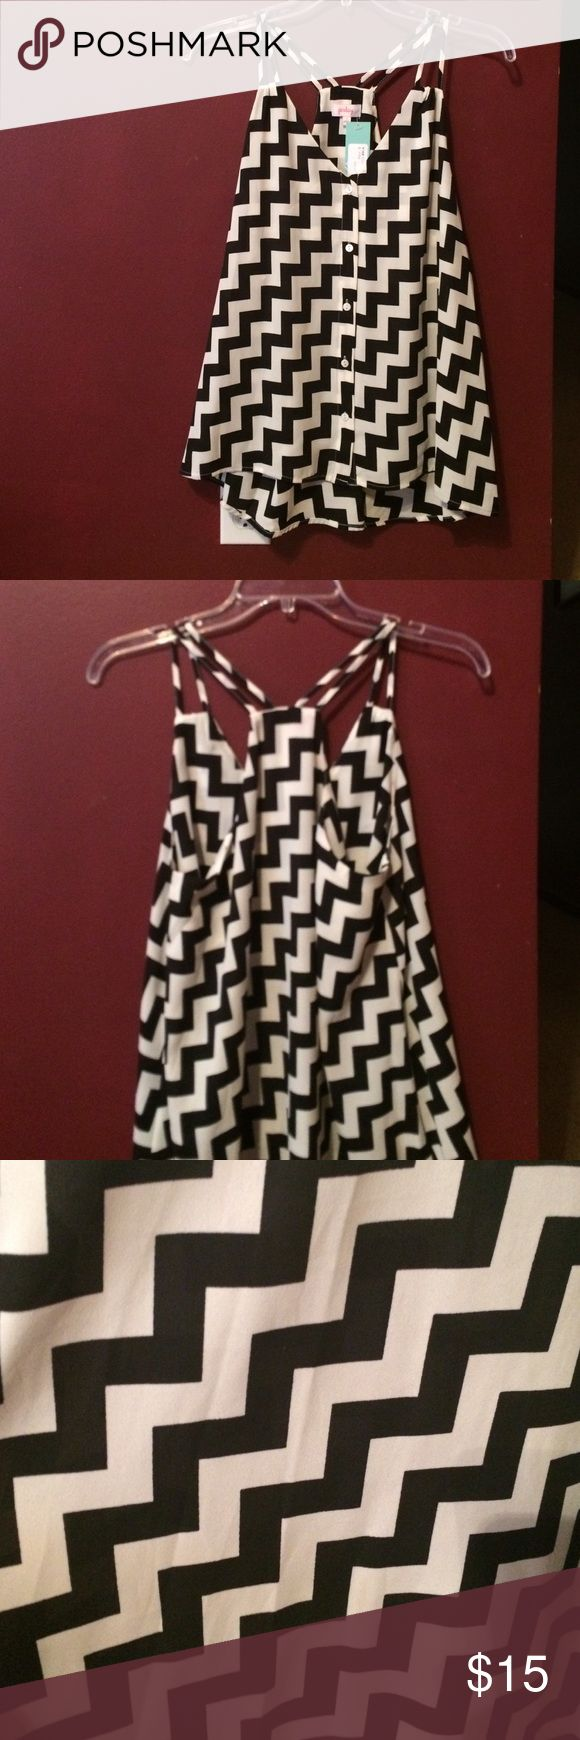 Beautiful geometric strappy top Beautiful new with tags black and white geometric print top by Pixley. 100% polyester Pixley Tops